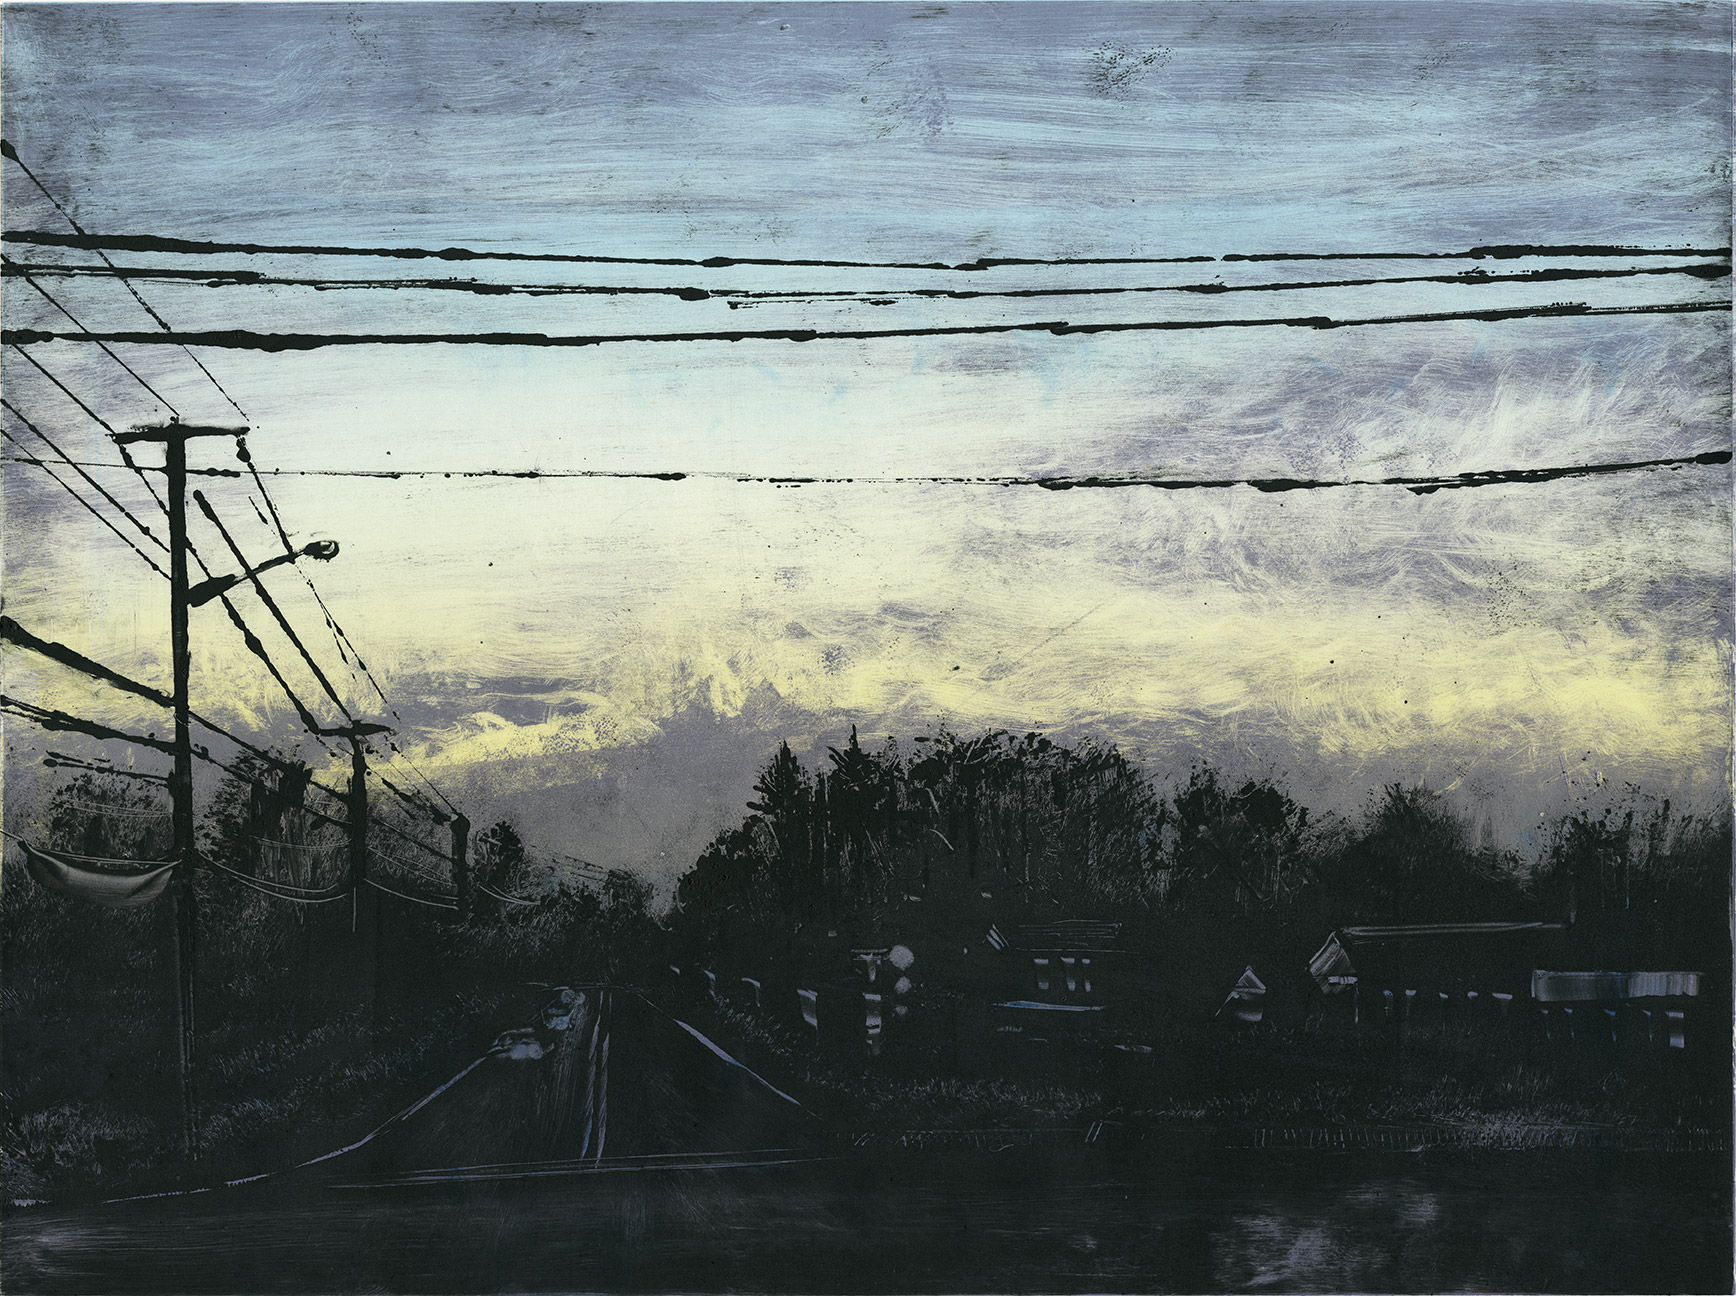 """Dawn - Russell St, Hadley, MA 2014 18""""x24"""" Three Stage Monotype  In the Prints & Photographs Collection at The Boston Athenæum"""